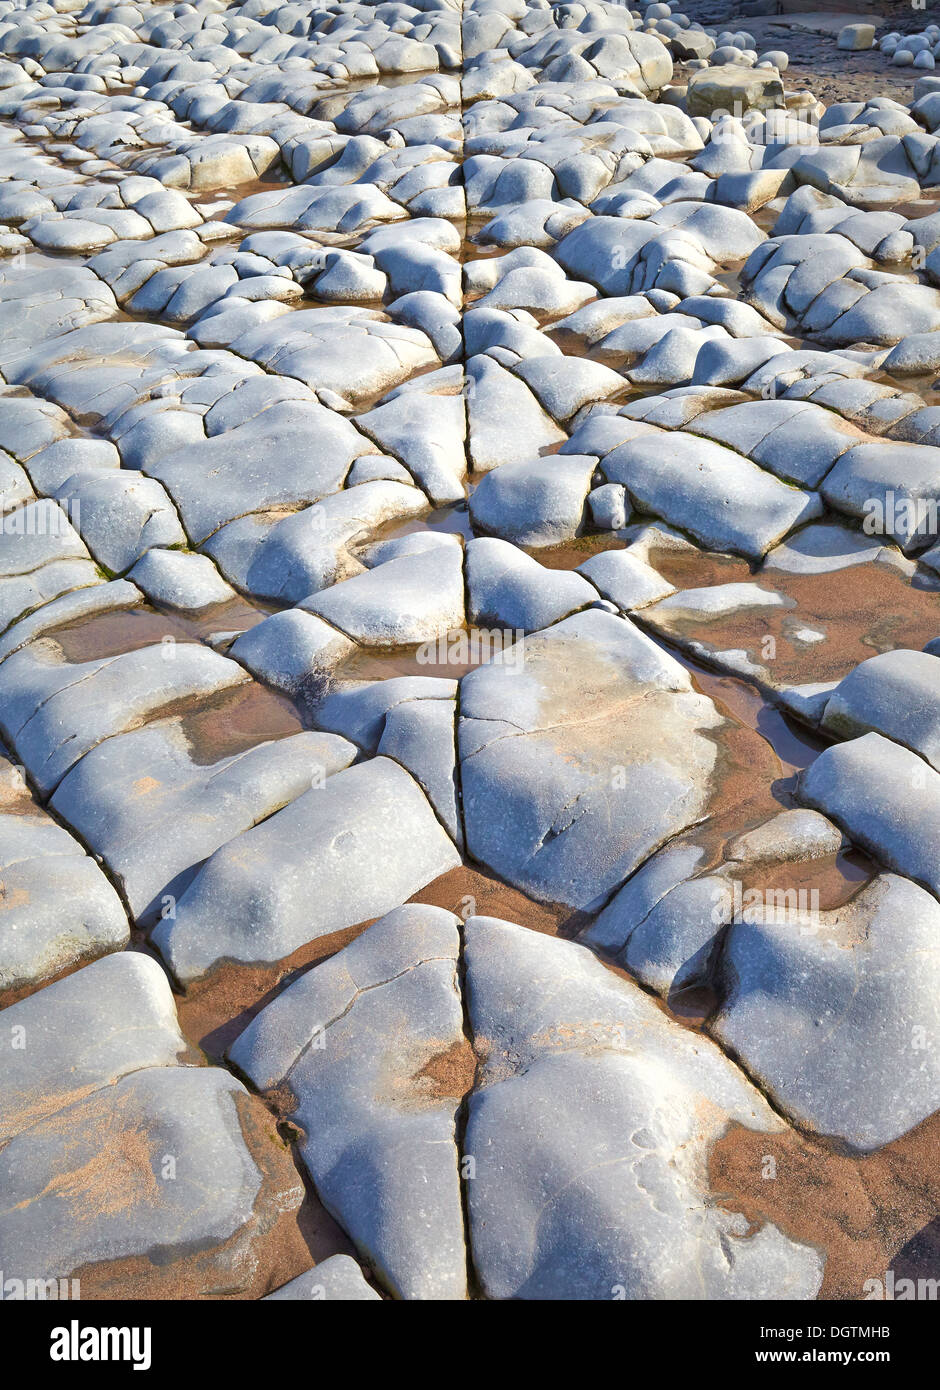 Fault line running against jointing in beds of eroded Blue Lias limestone in the Severn Estuary near Lilstock Somerset - Stock Image